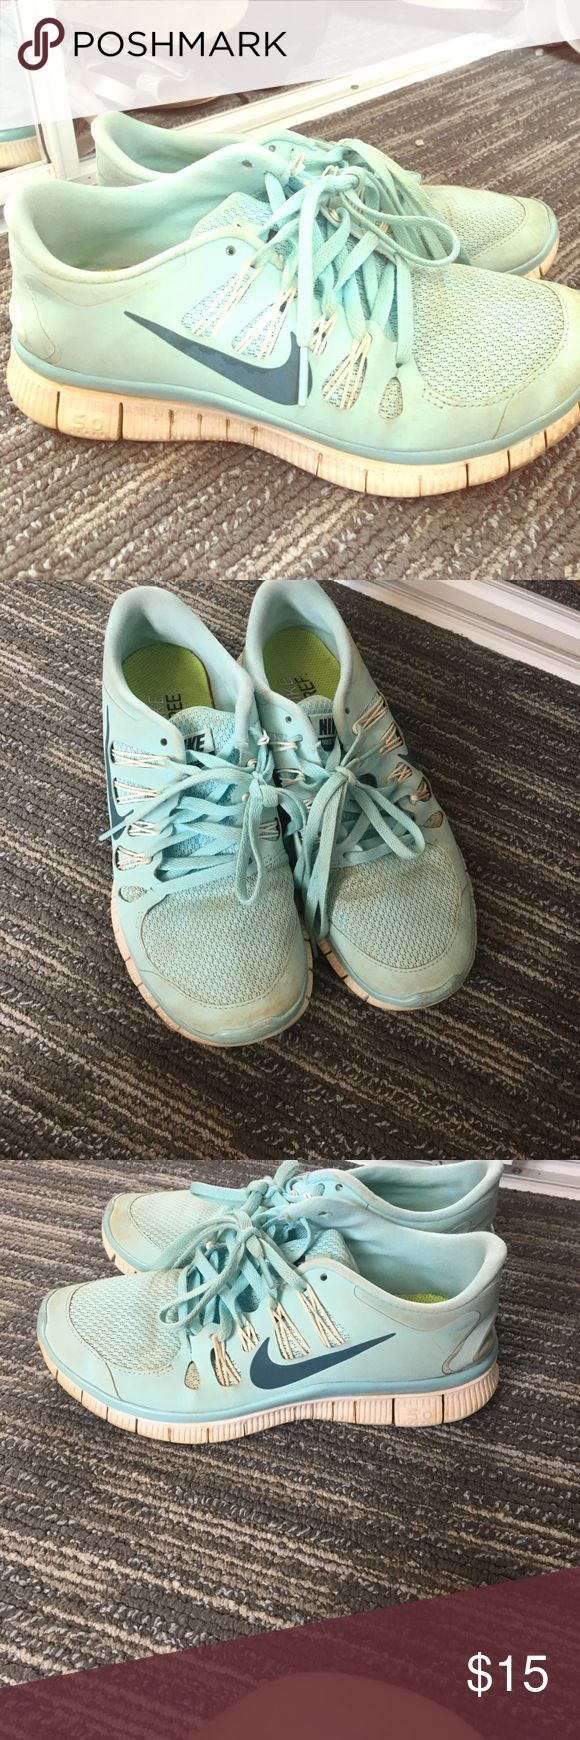 Nike Tiffany blue tennis shoes The cutes tennis shoes! Have some dirt stains (shown in pictures) would come out with a good wash. Size 7 in women's Nike Shoes Athletic Shoes